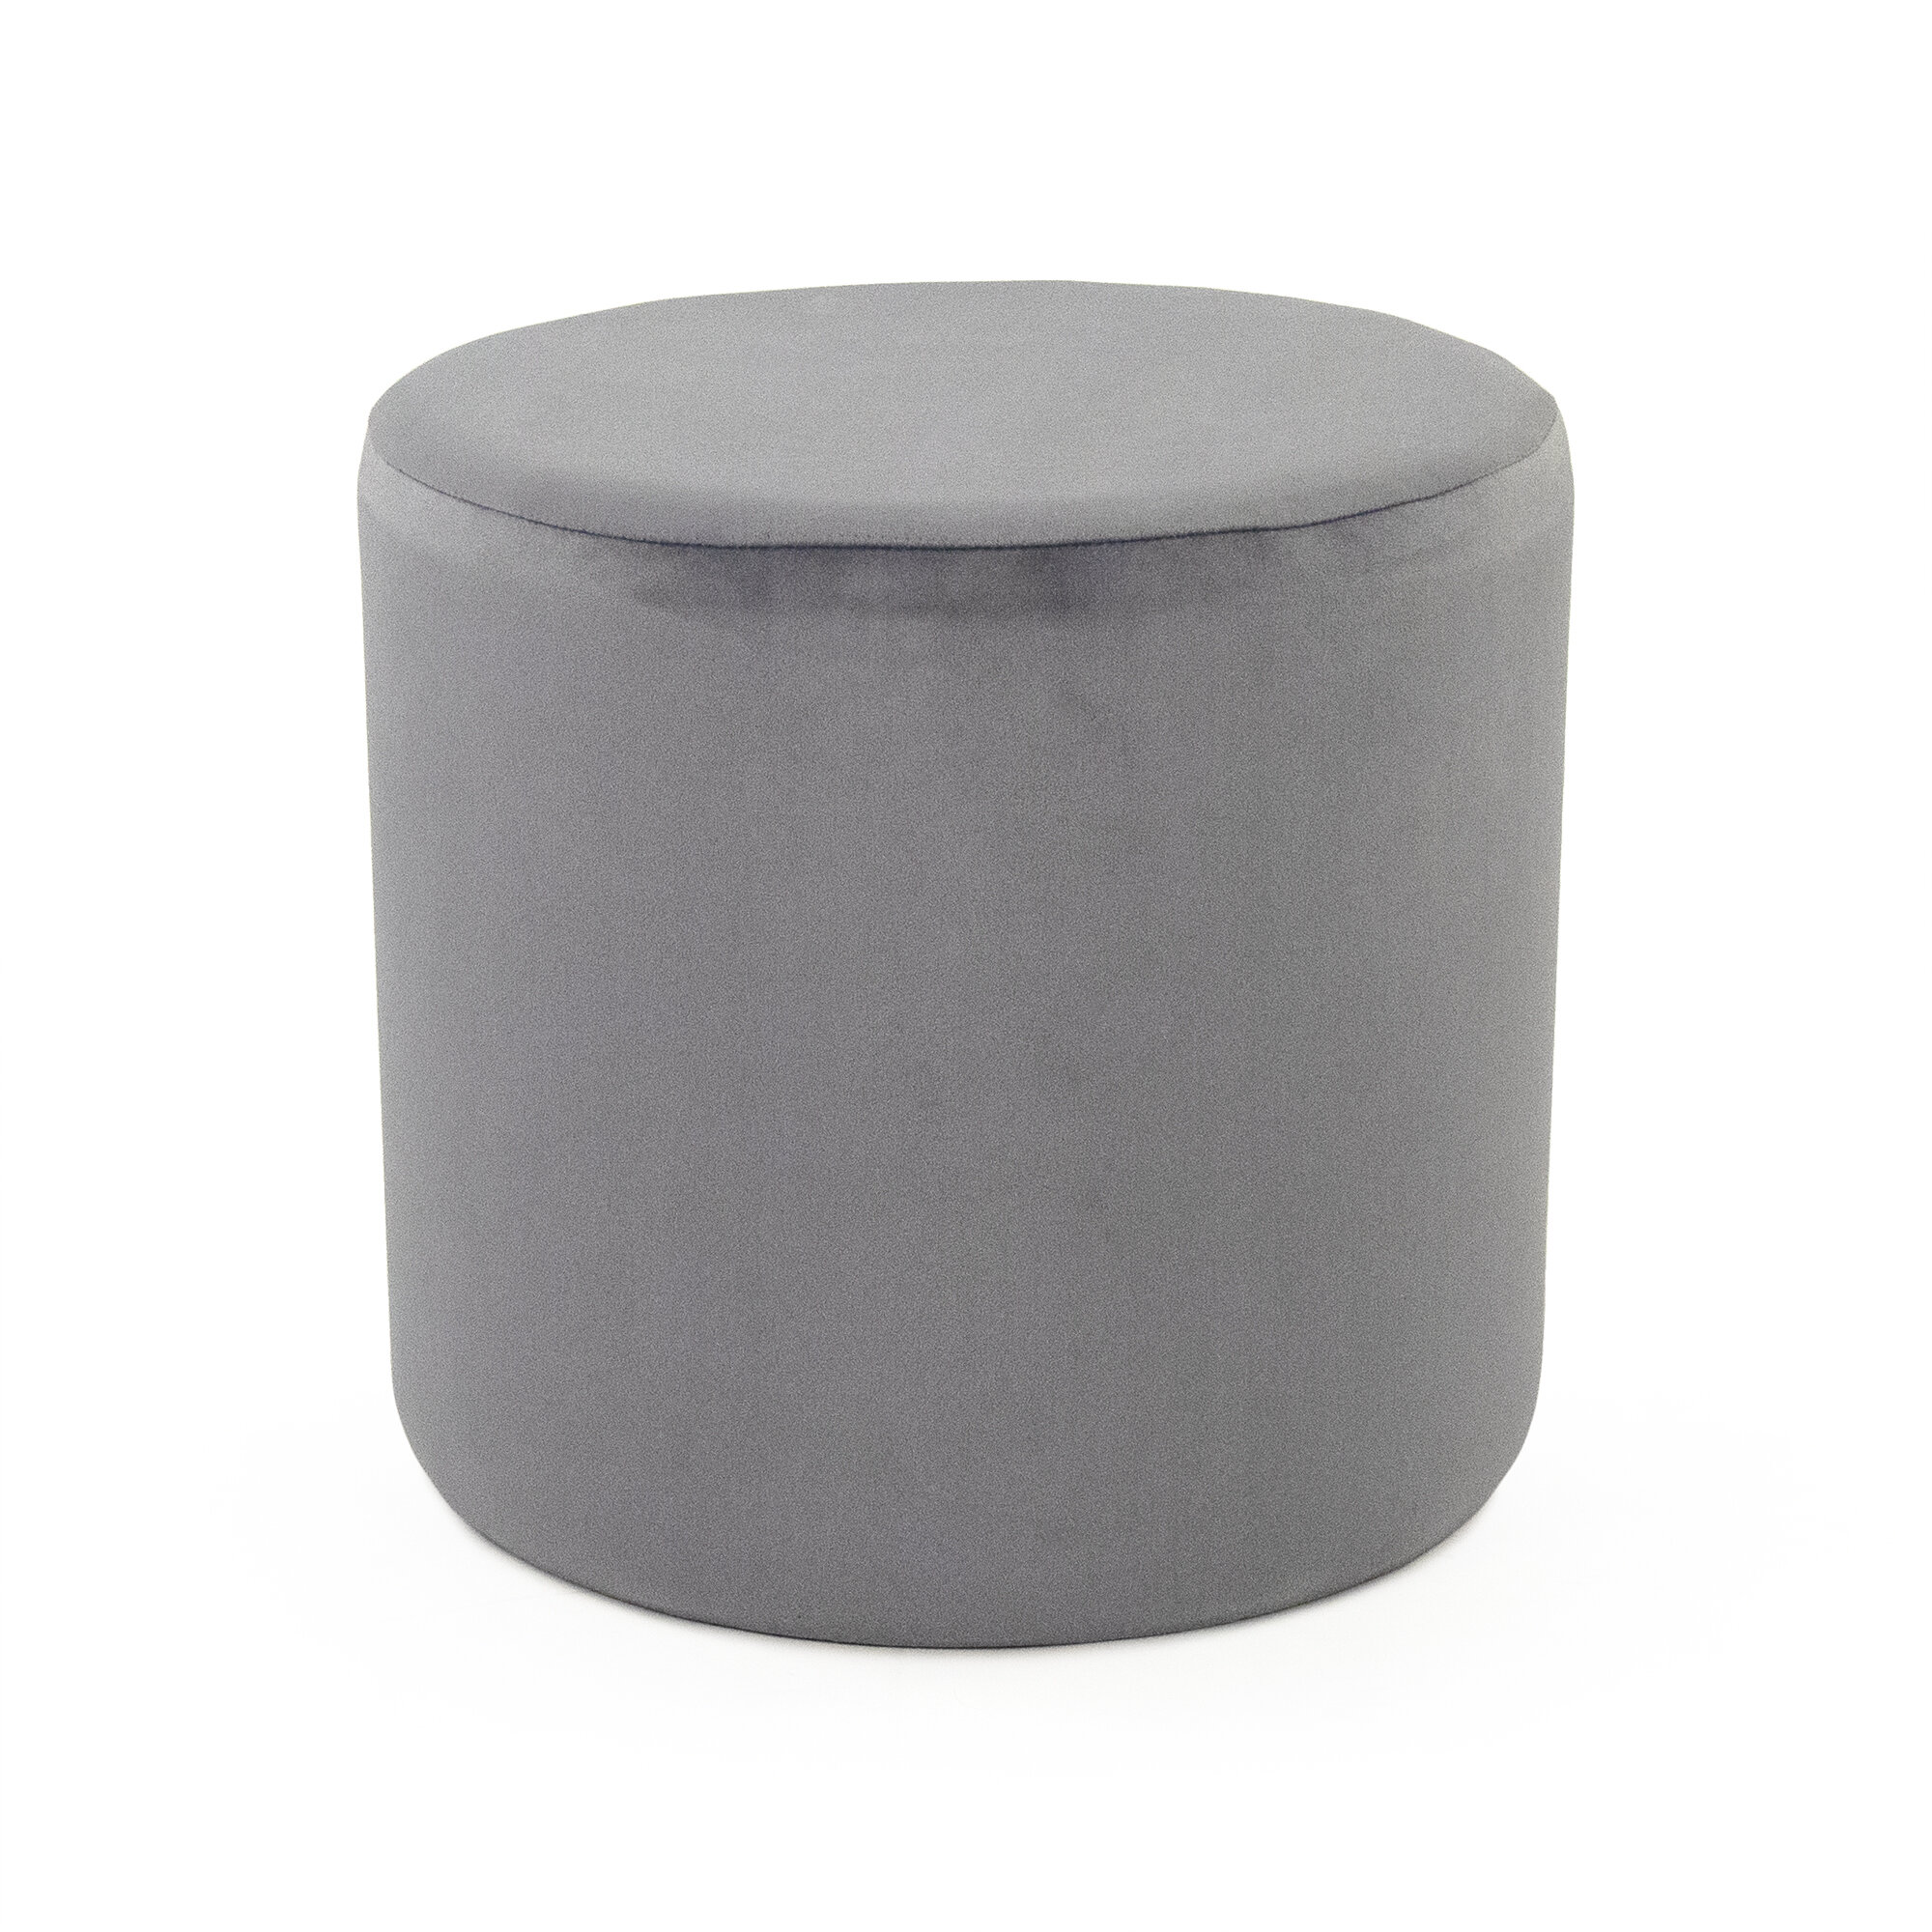 Everly Quinn Roldao Solid Wood Accent Stool Wayfair